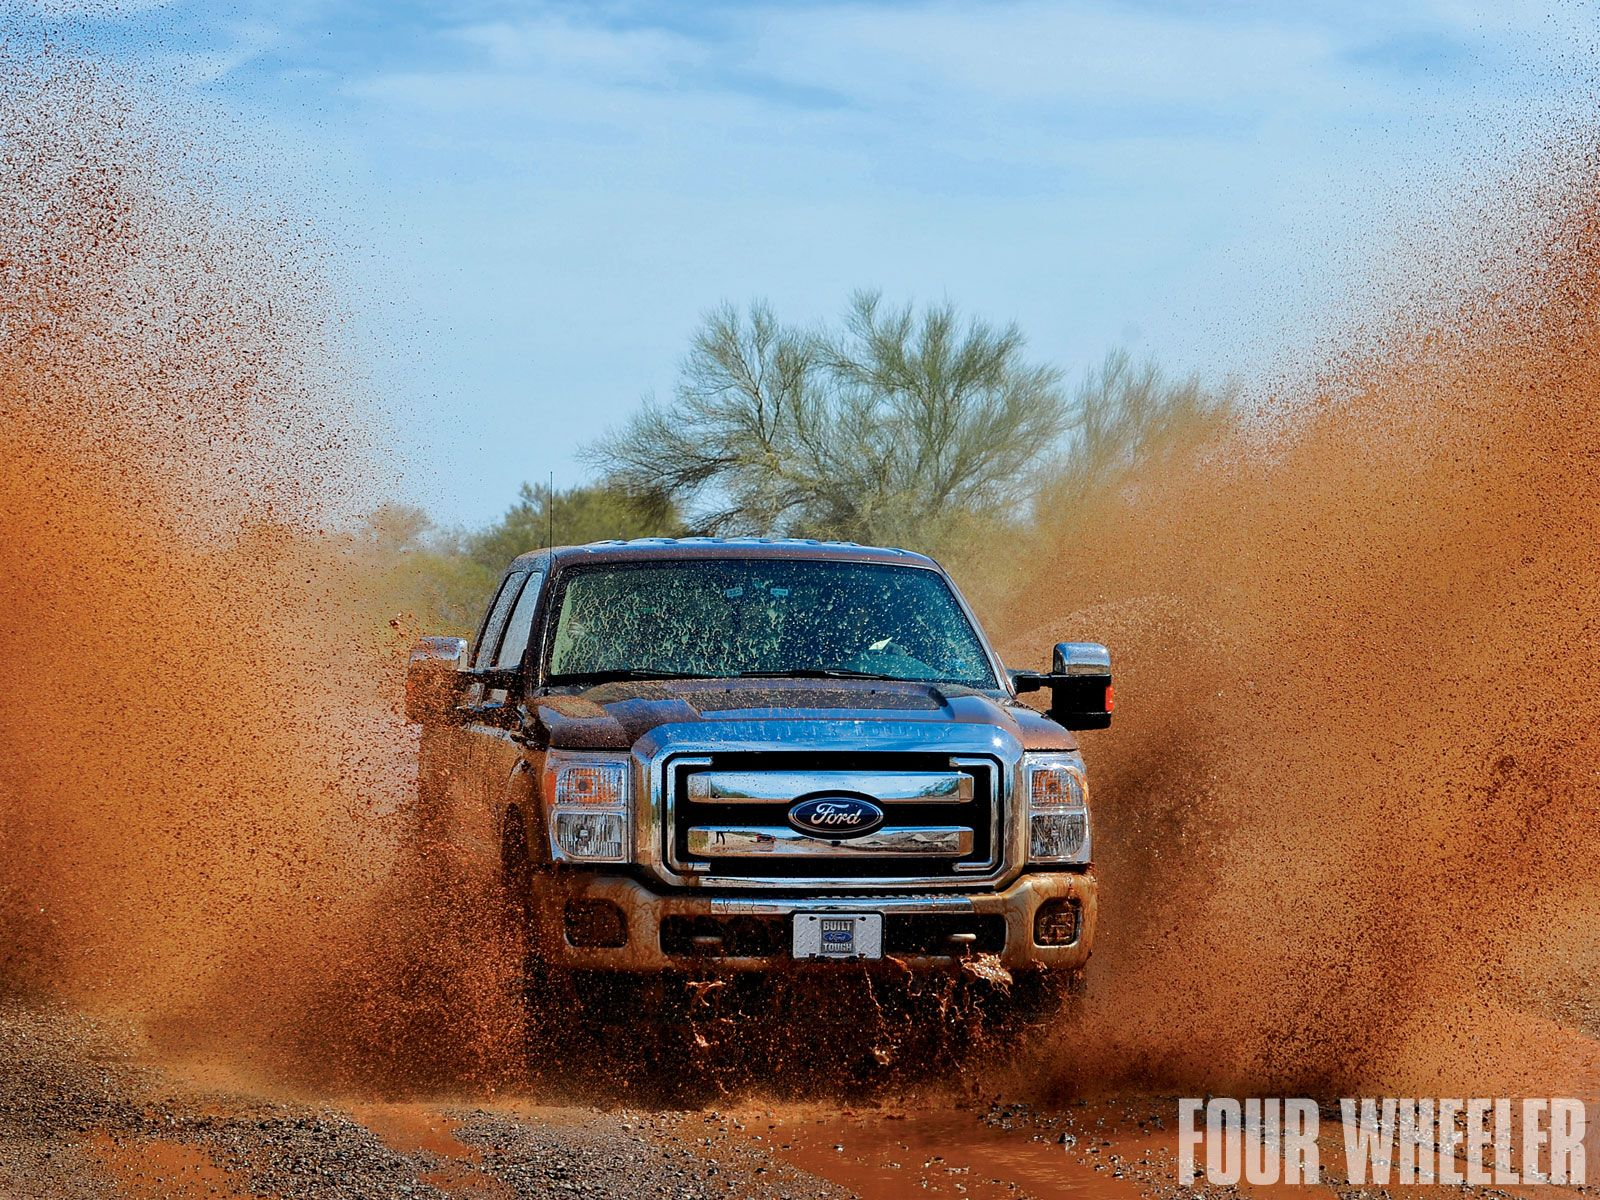 Pin By Chaz Seeds On Truckin It Ford Super Duty Ford F250 F250